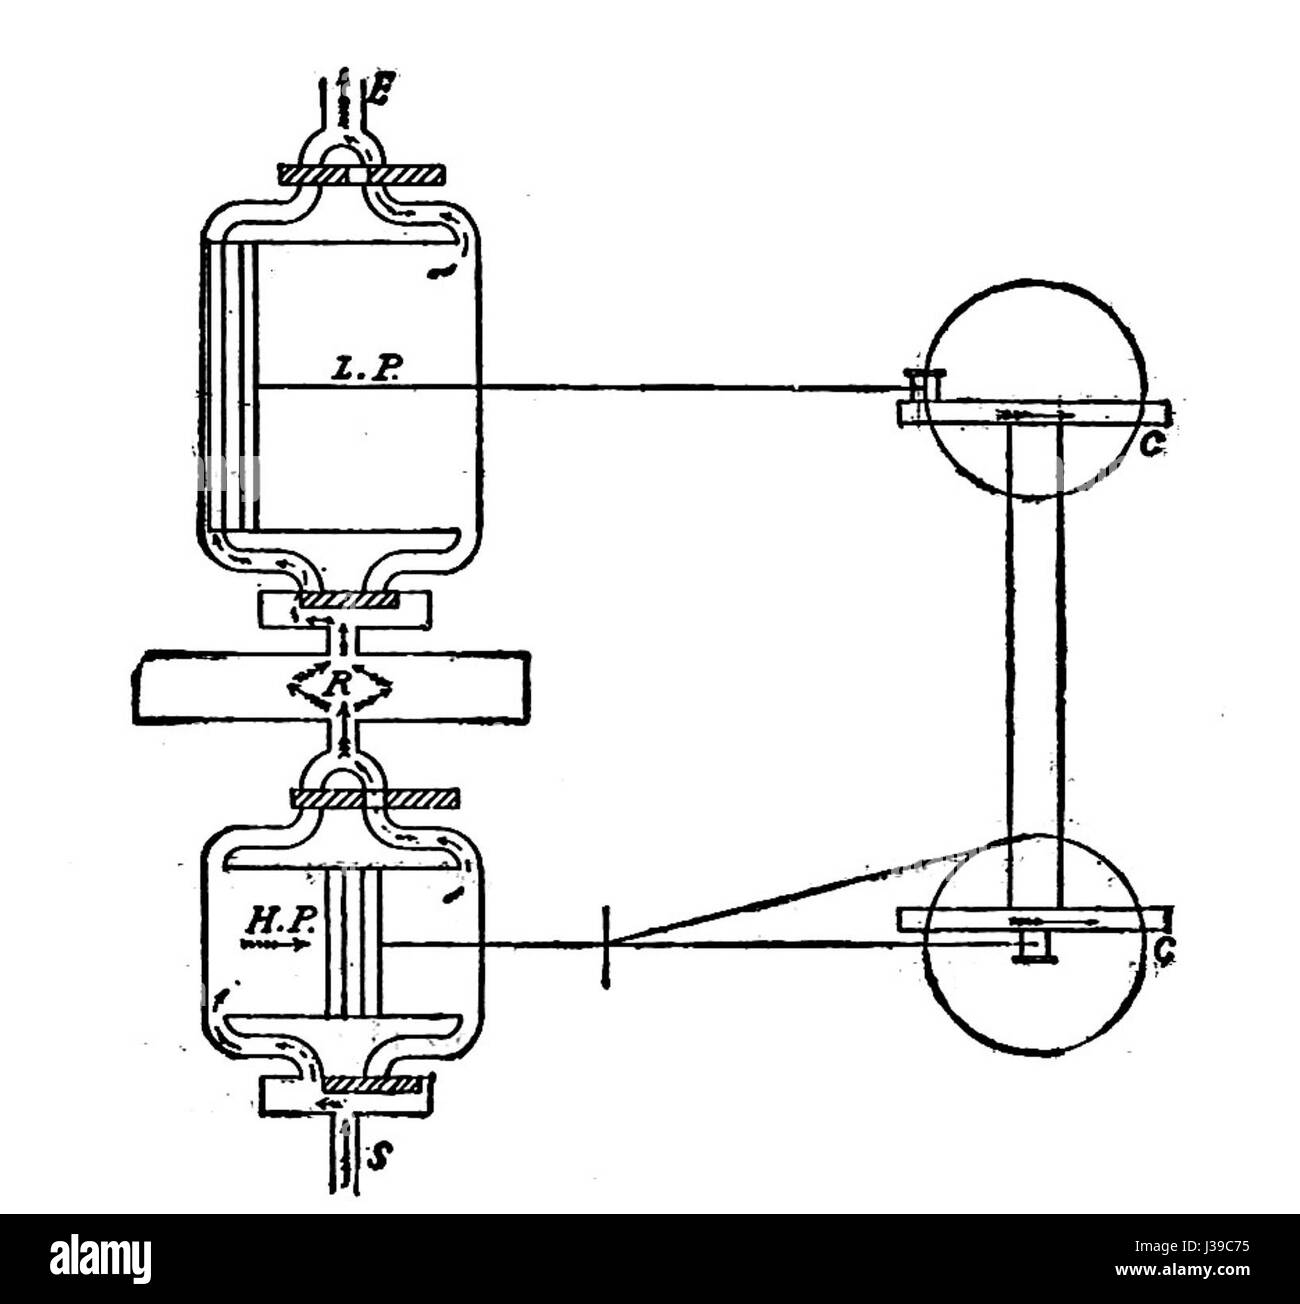 Steam Engine Diagram Photos Steam Engine Diagram – Labeled Diagram Of A Steam Engine